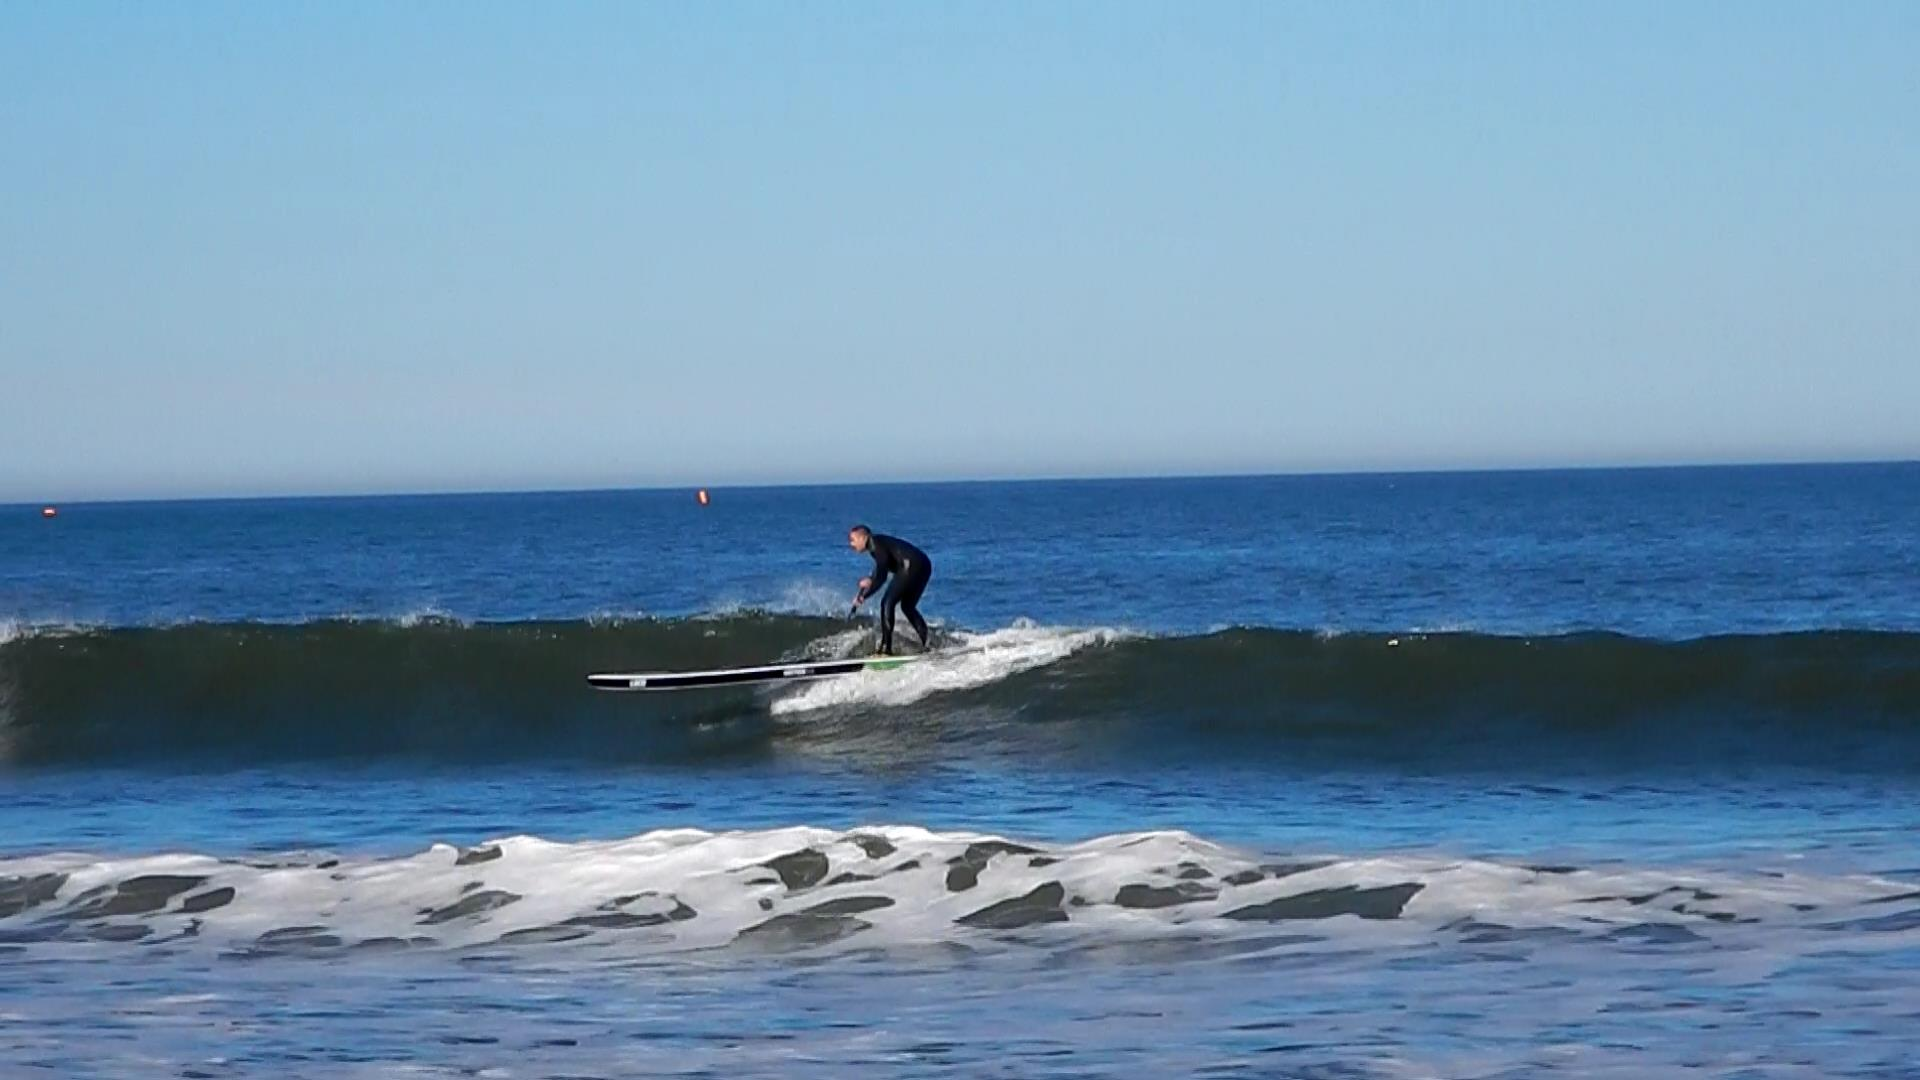 14' Loco Motion Air iSUP Surfing Waves in North East